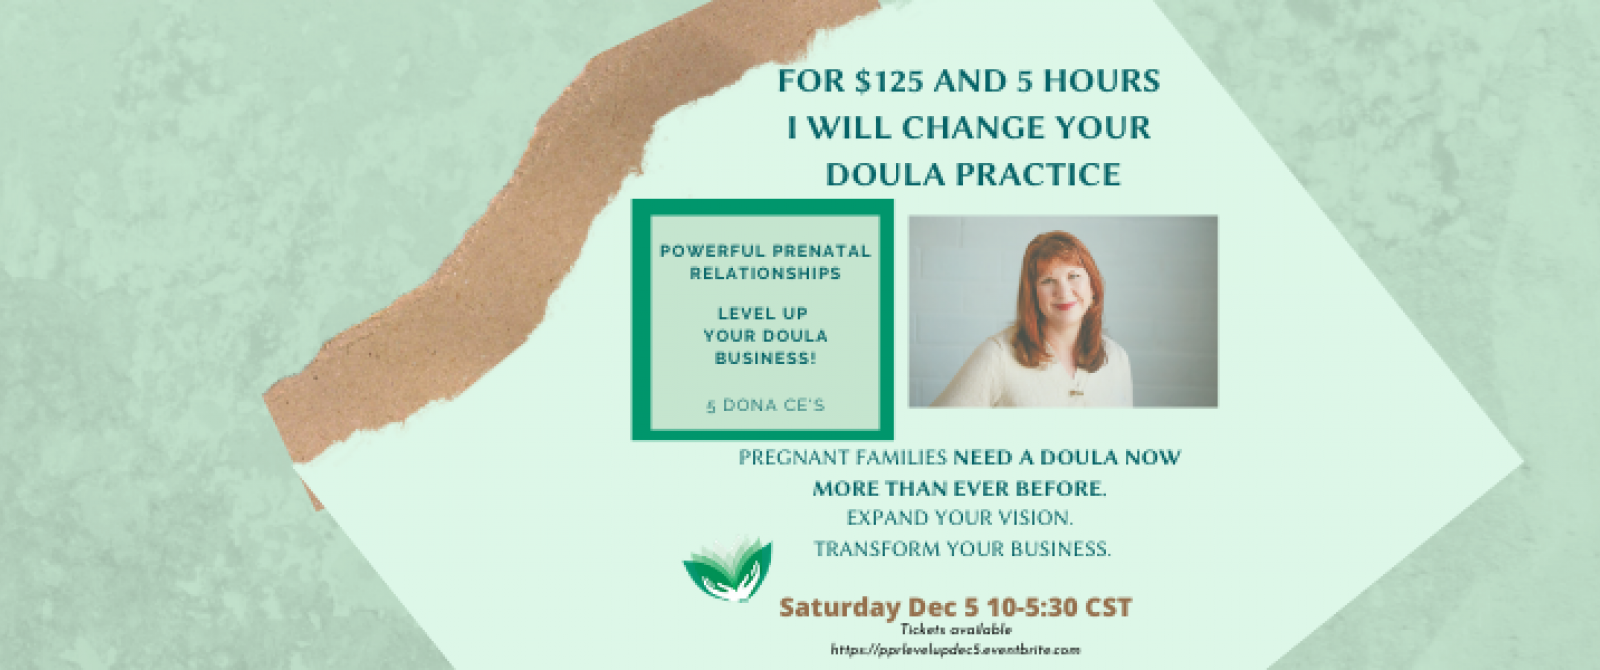 For $125 and 5 Hours I Will Change Your Doula Practice - png